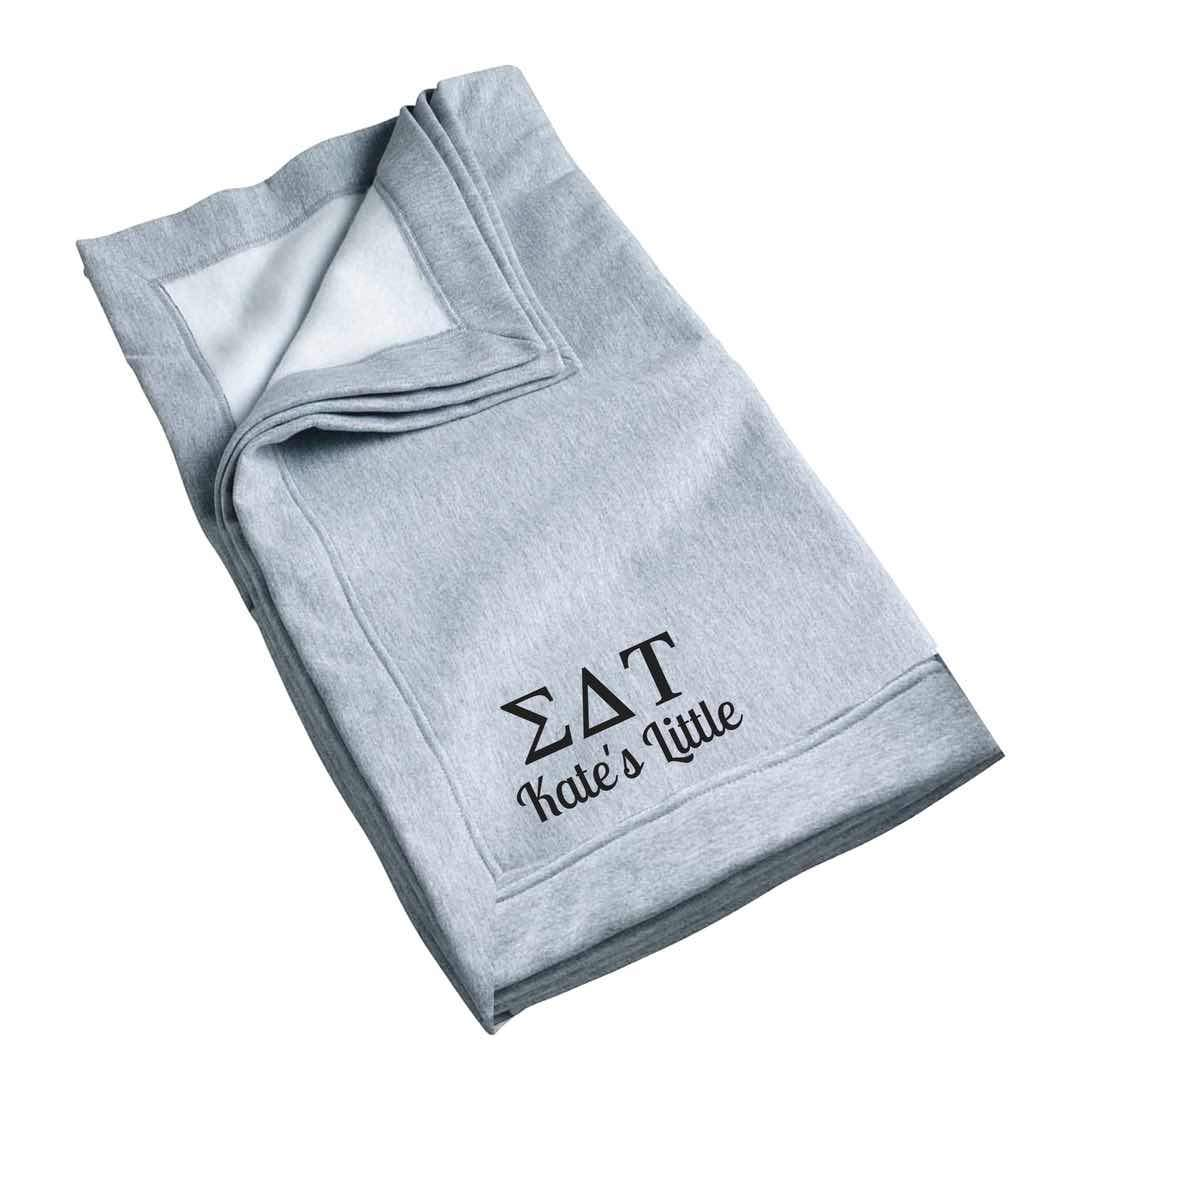 Sigma Delta Tau Little Blanket, Recommended One Size Fits All Personalized Big Little Gift